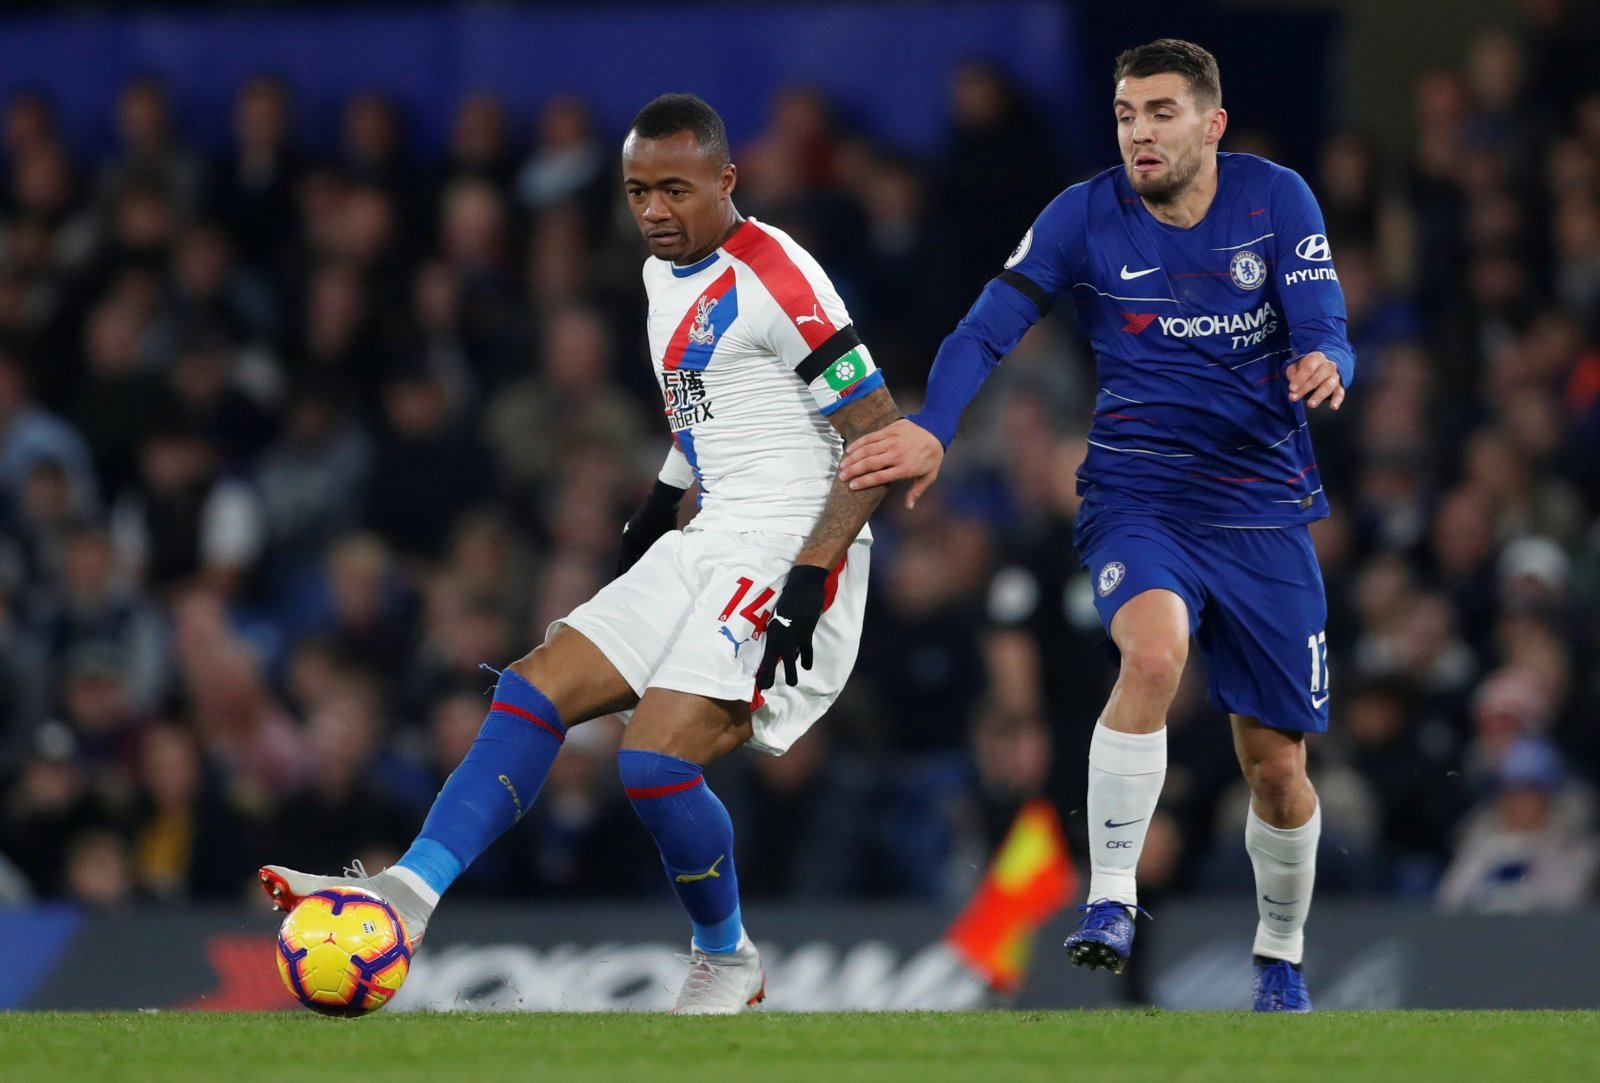 Crystal Palace: Jordan Ayew closing in on permanent move